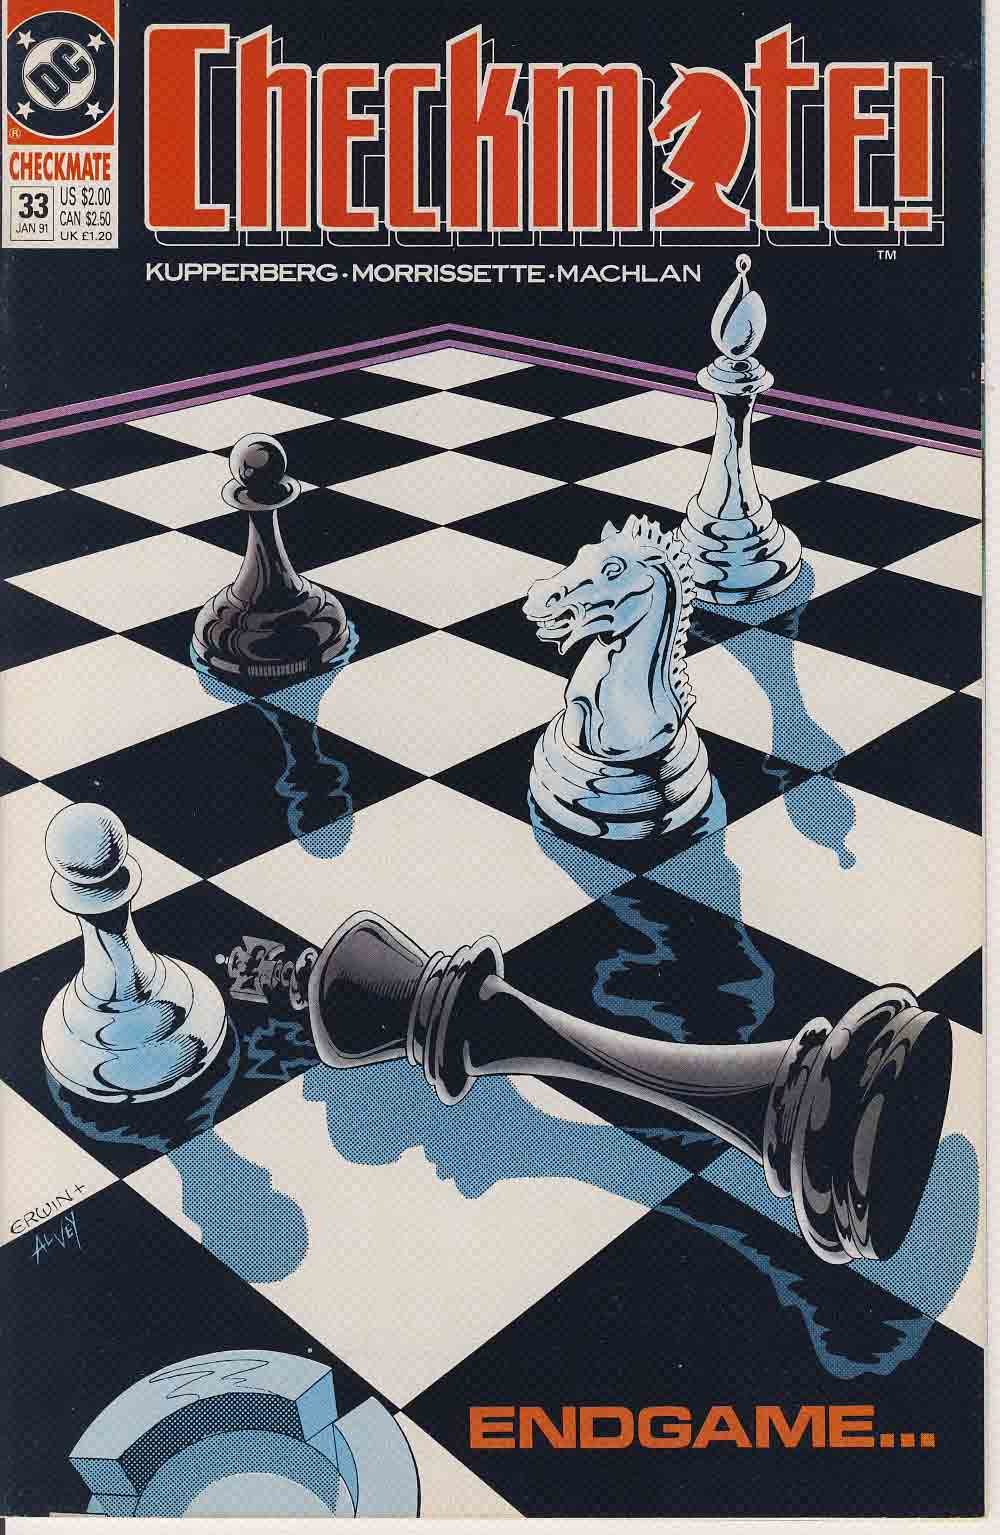 canadian chess - chess in other media